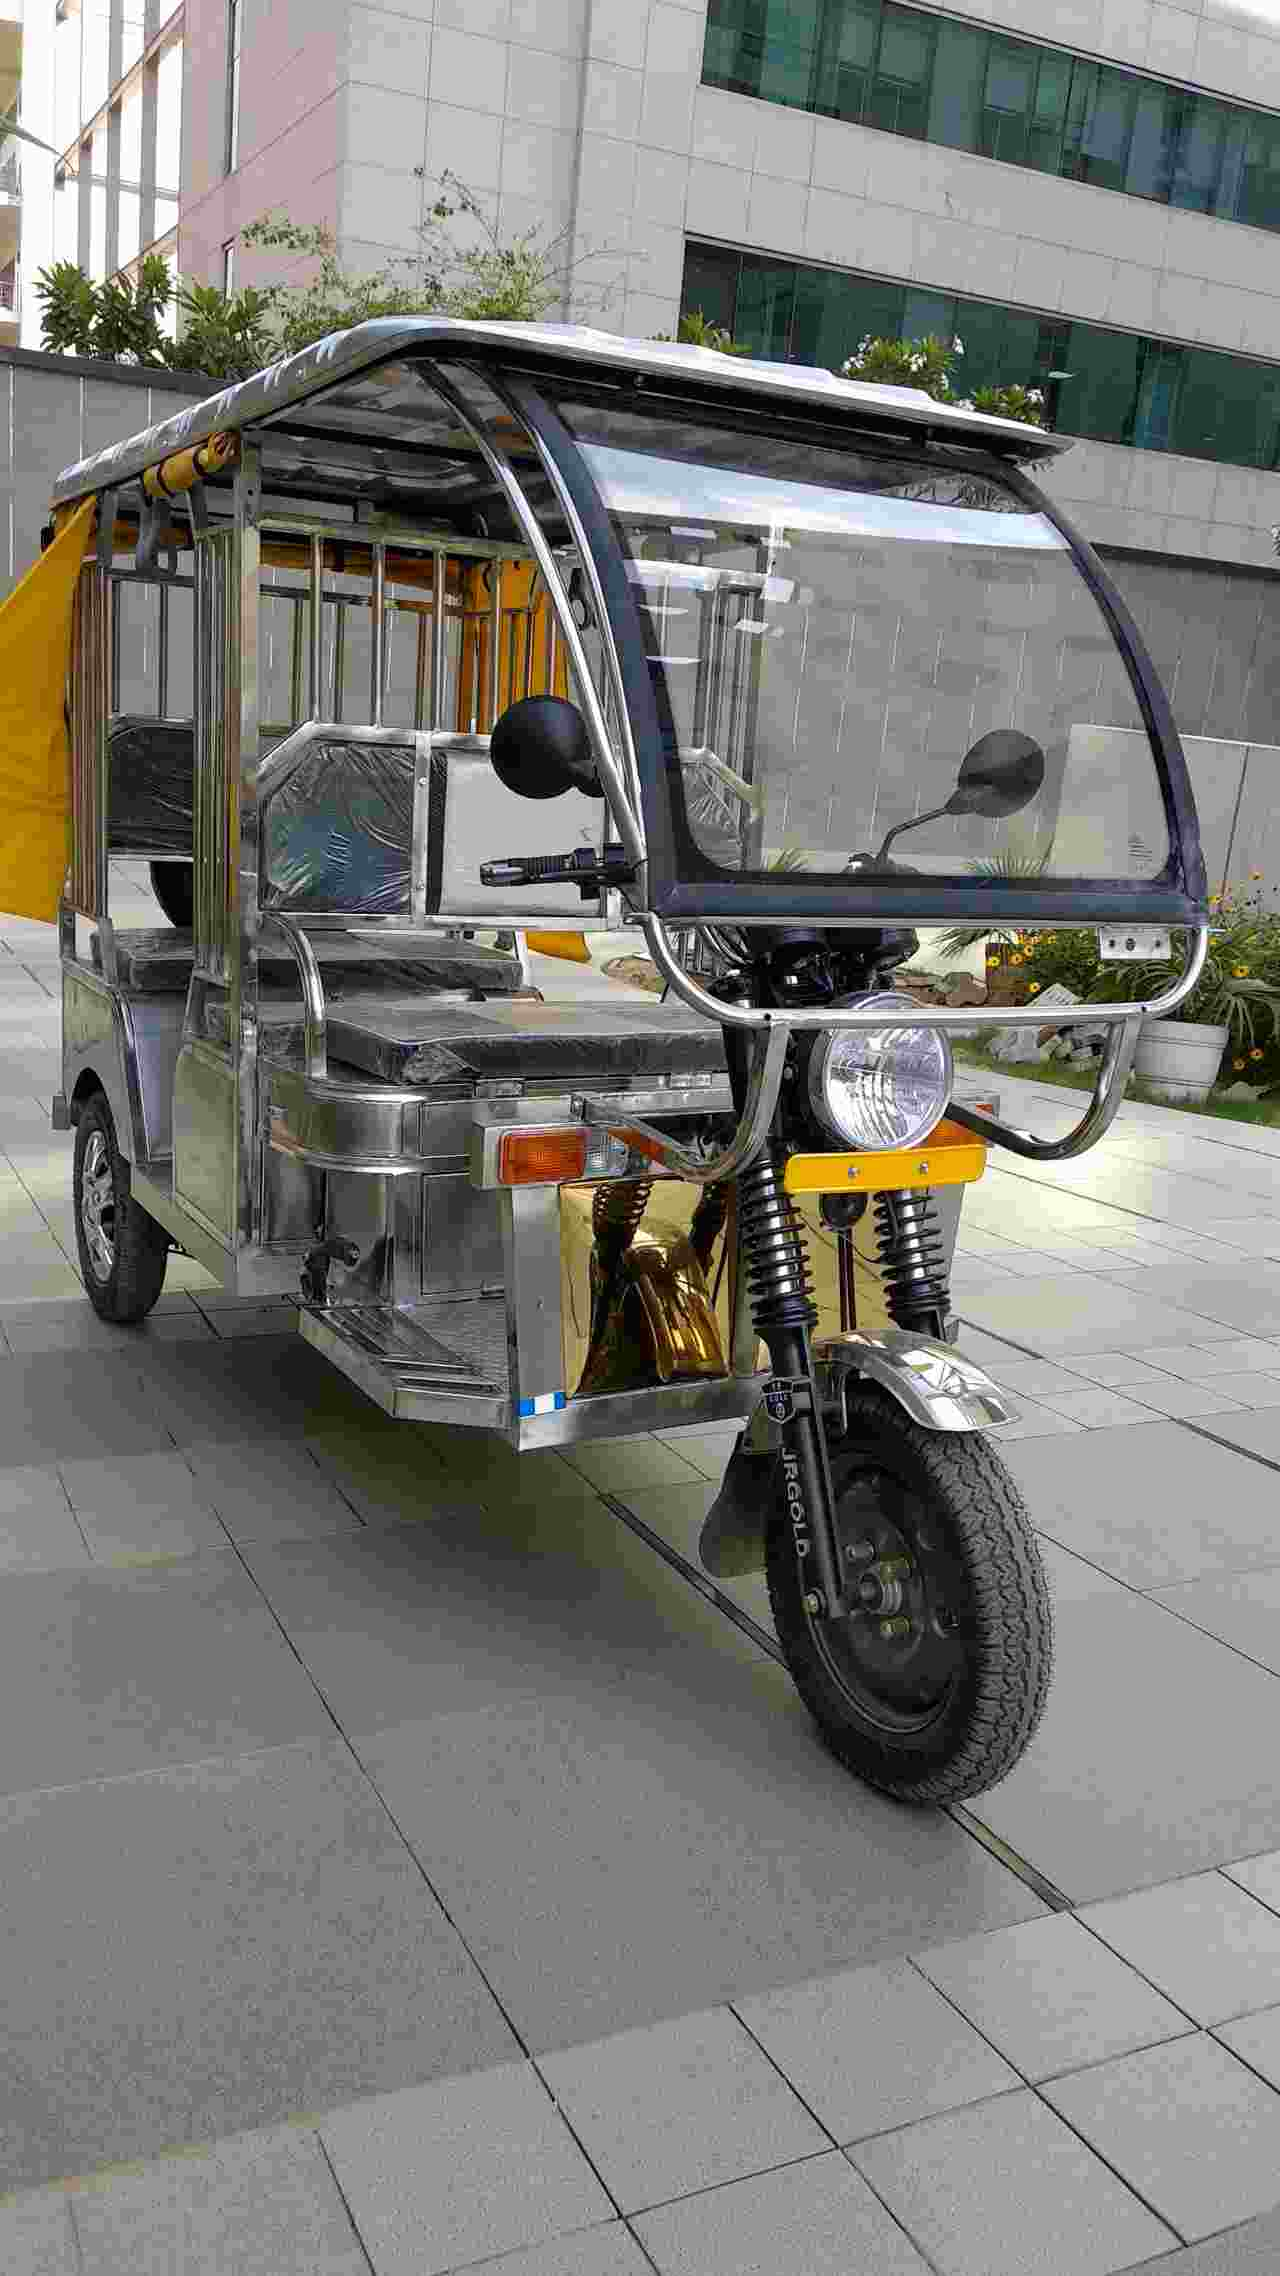 Jindal Stainless, has developed the first stainless steel E-rickshaw prototype in India (Image: Jindal Steel).